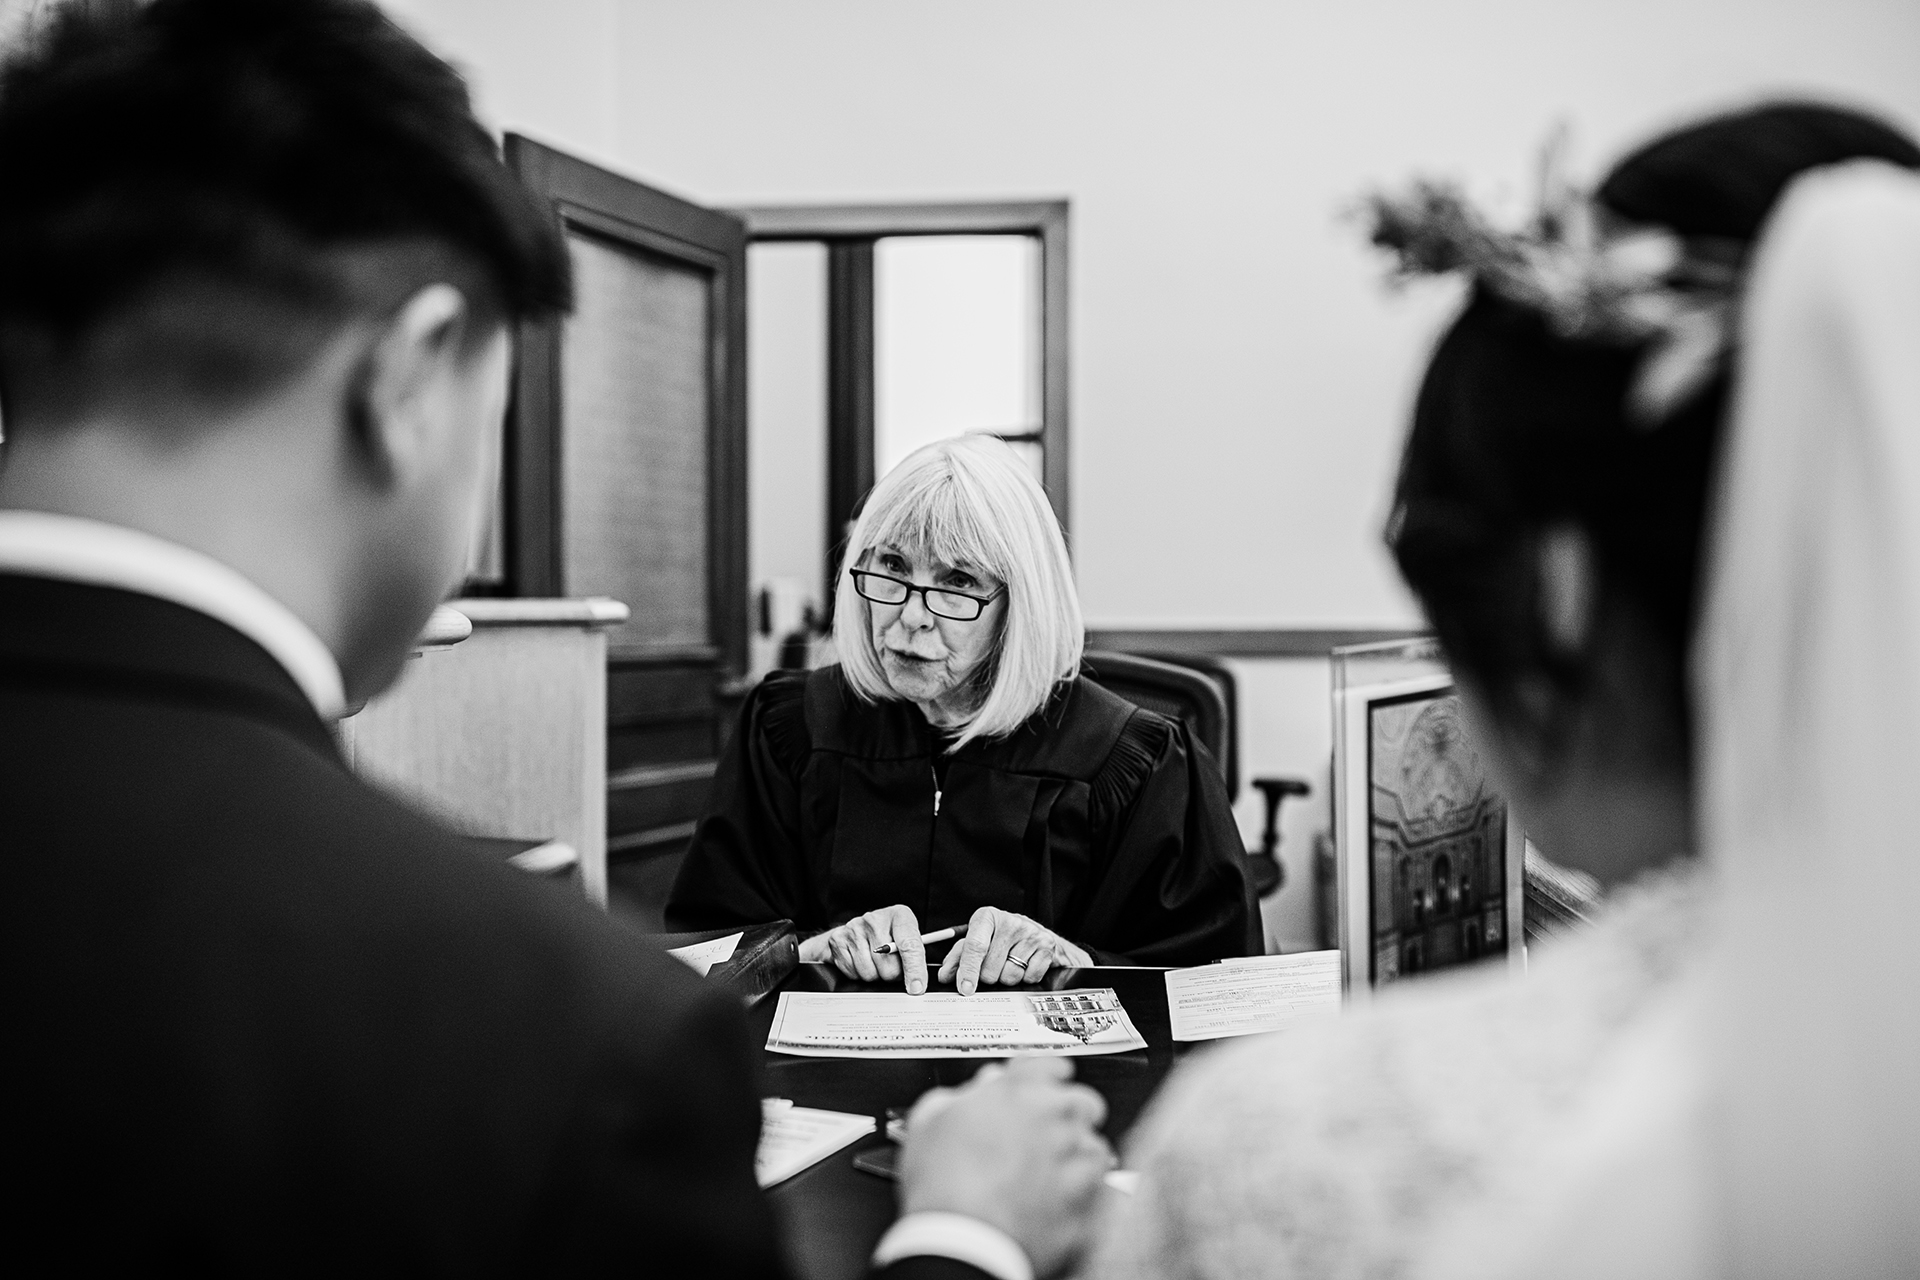 SF City Hall Wedding Photographer for San Francisco, CA | The bride and groom sit at the judge's desk holding hands